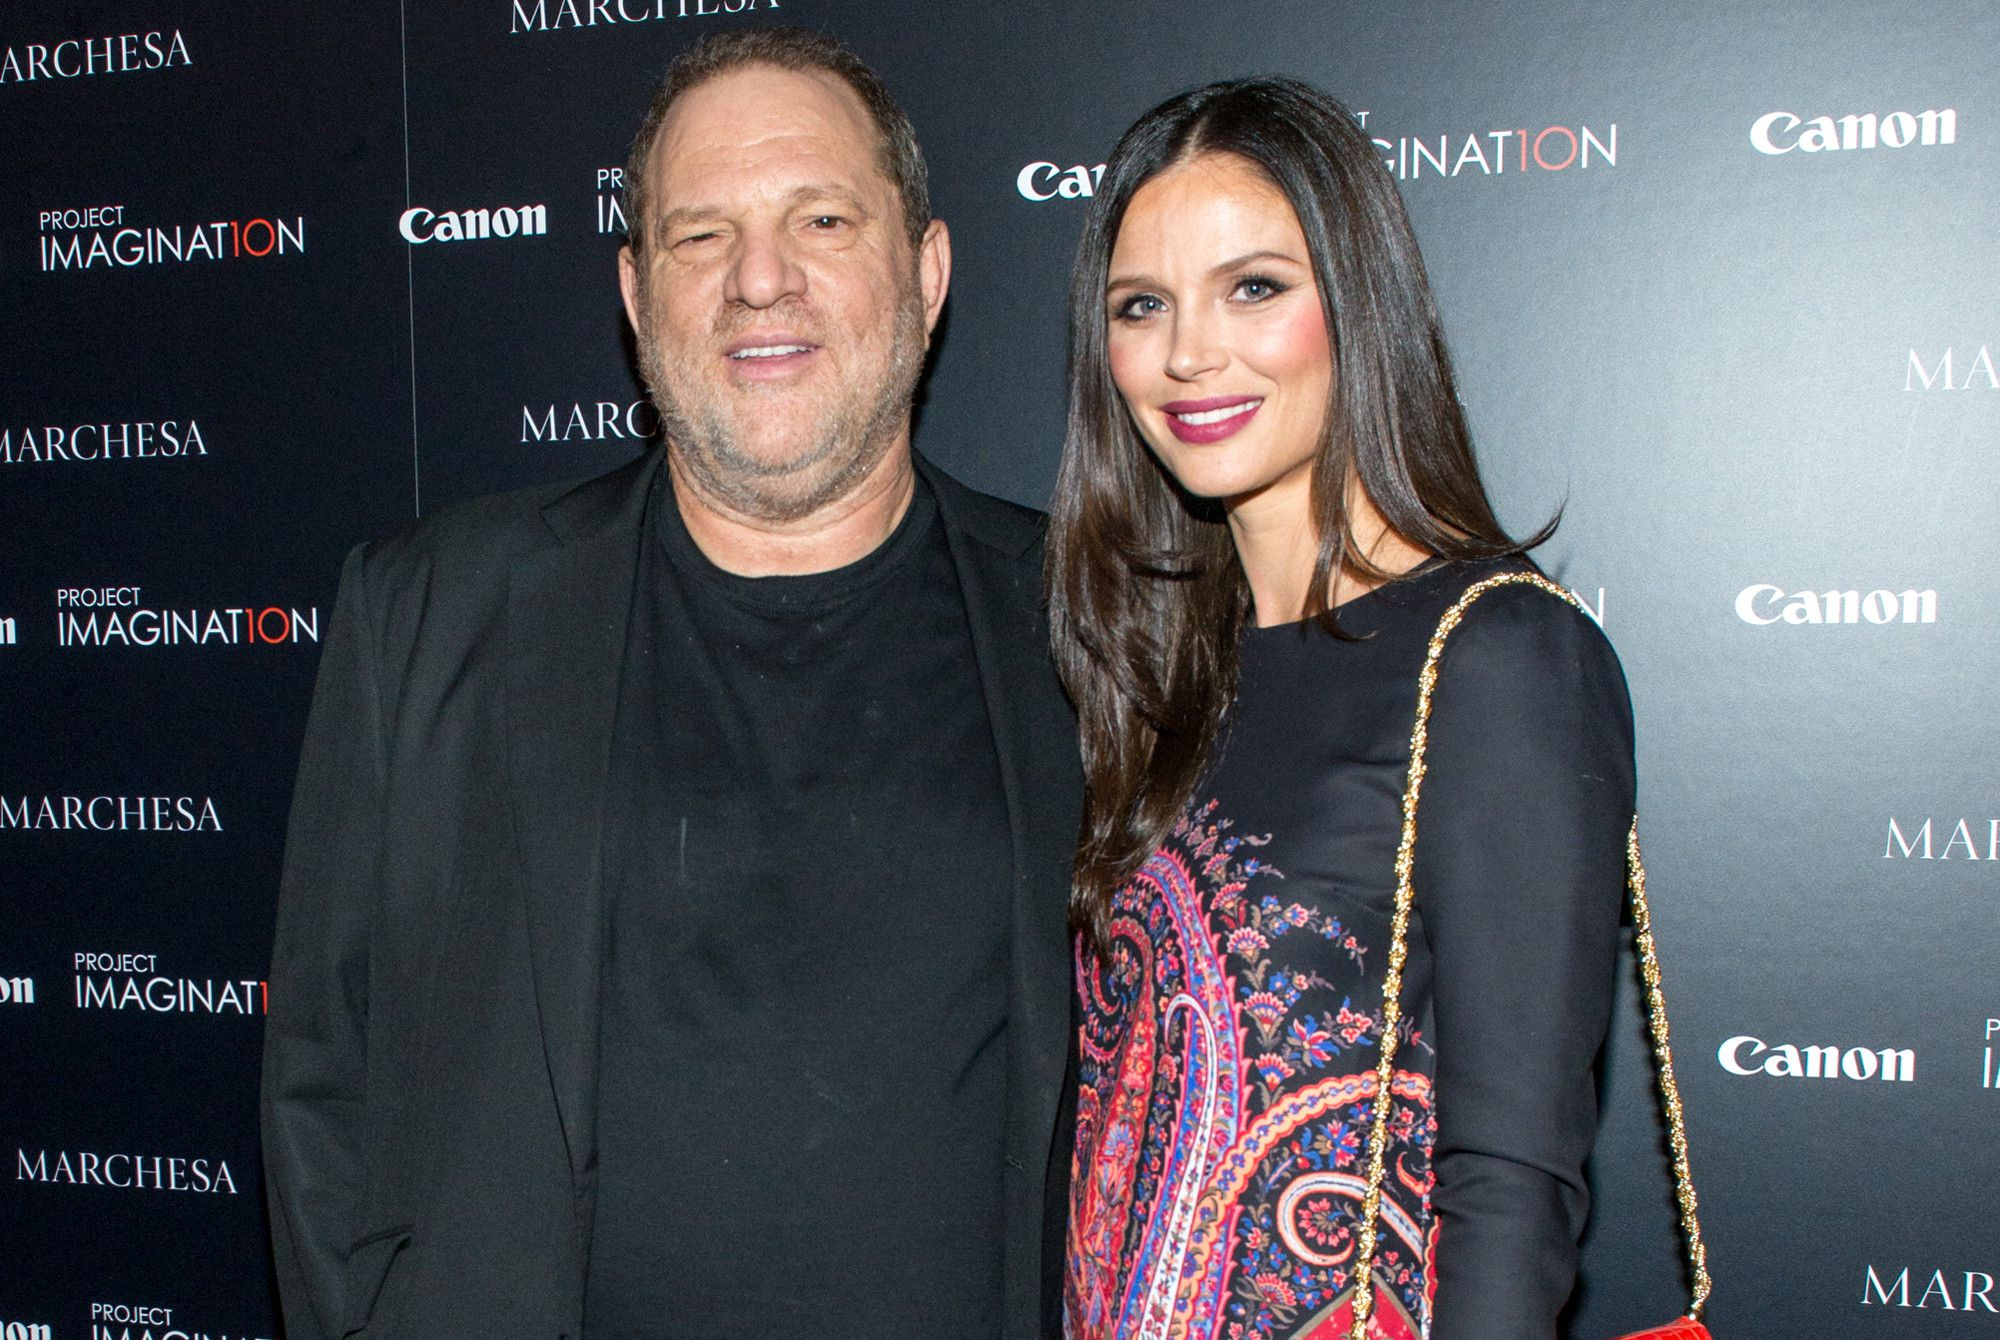 NY Times vs Harvey Weinstein: un'inchiesta svela decenni di abusi sessuali